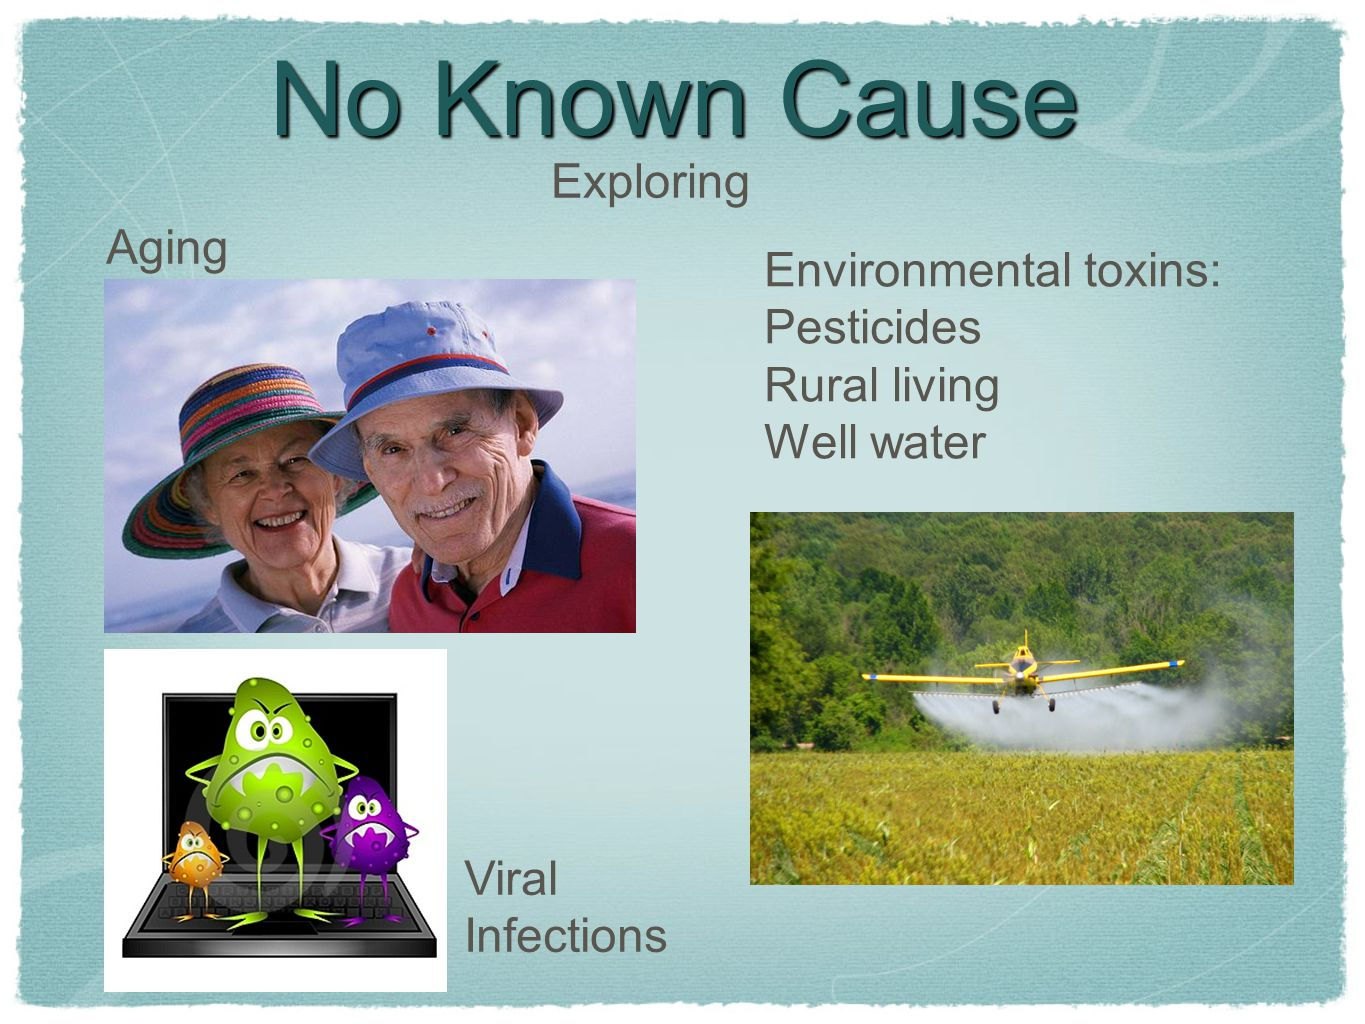 No Known Cause Exploring Aging Environmental toxins: Pesticides Rural living Well water Viral Infections